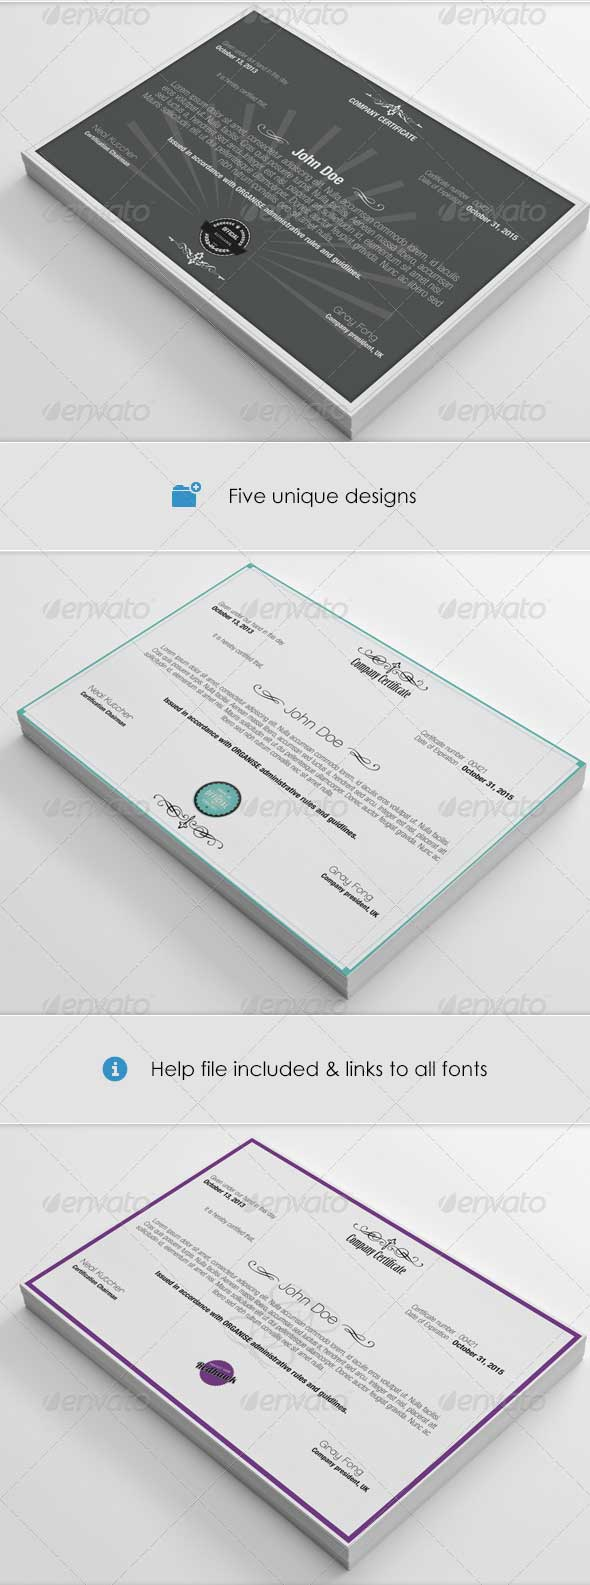 photoshop-psd-certificate-pack